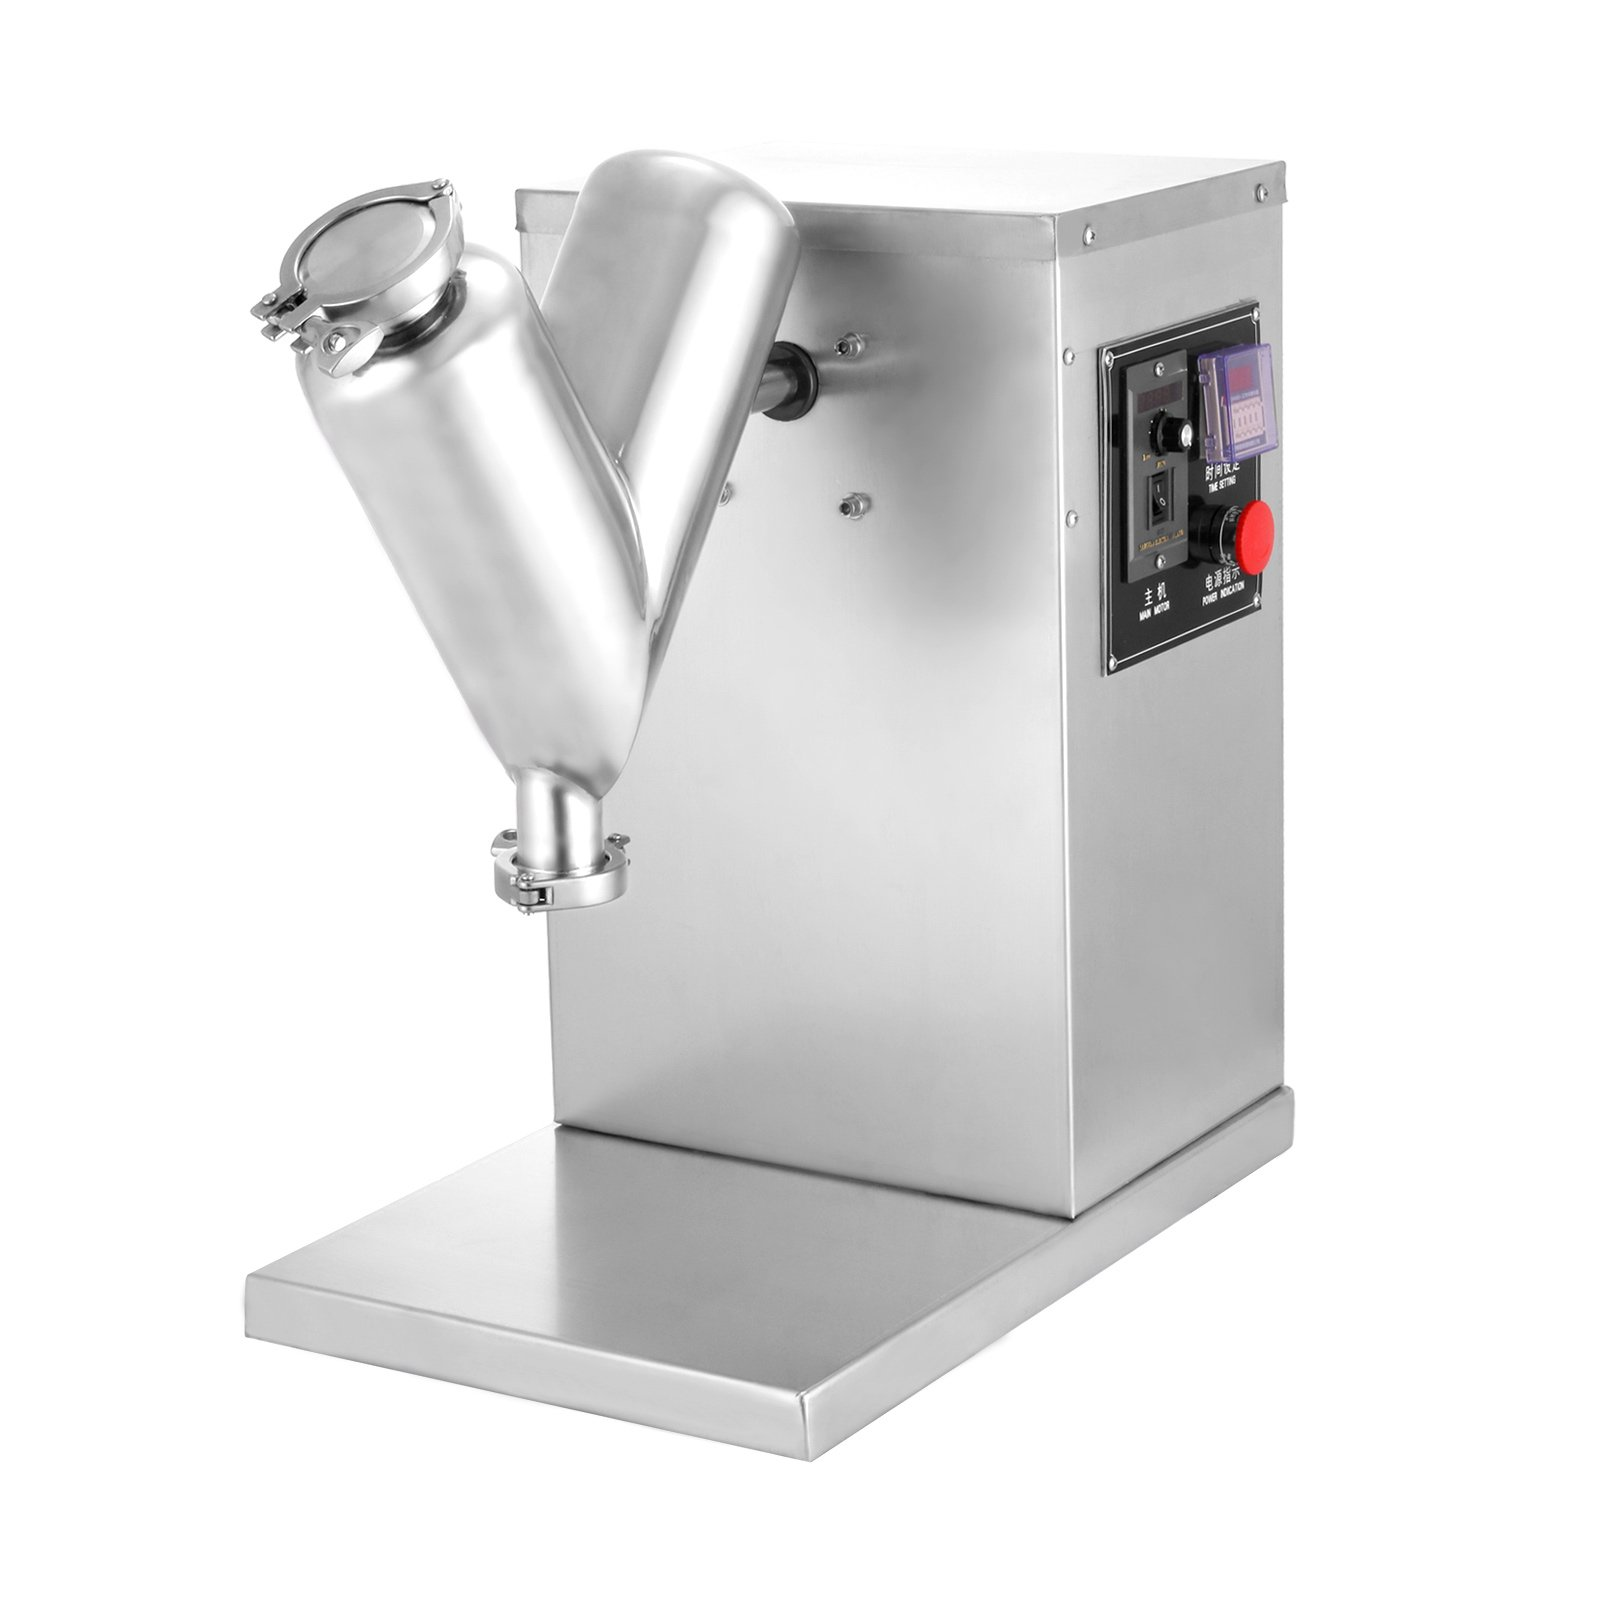 Happybuy 3L Powder Mixer Machine VH-2 Pharmaceutical Powder Mixer Stainless Steel Dry Powder Mixer V-type Powder Mixer Adjustable Laboratory Mixer Hig(3L) by Happybuy (Image #3)